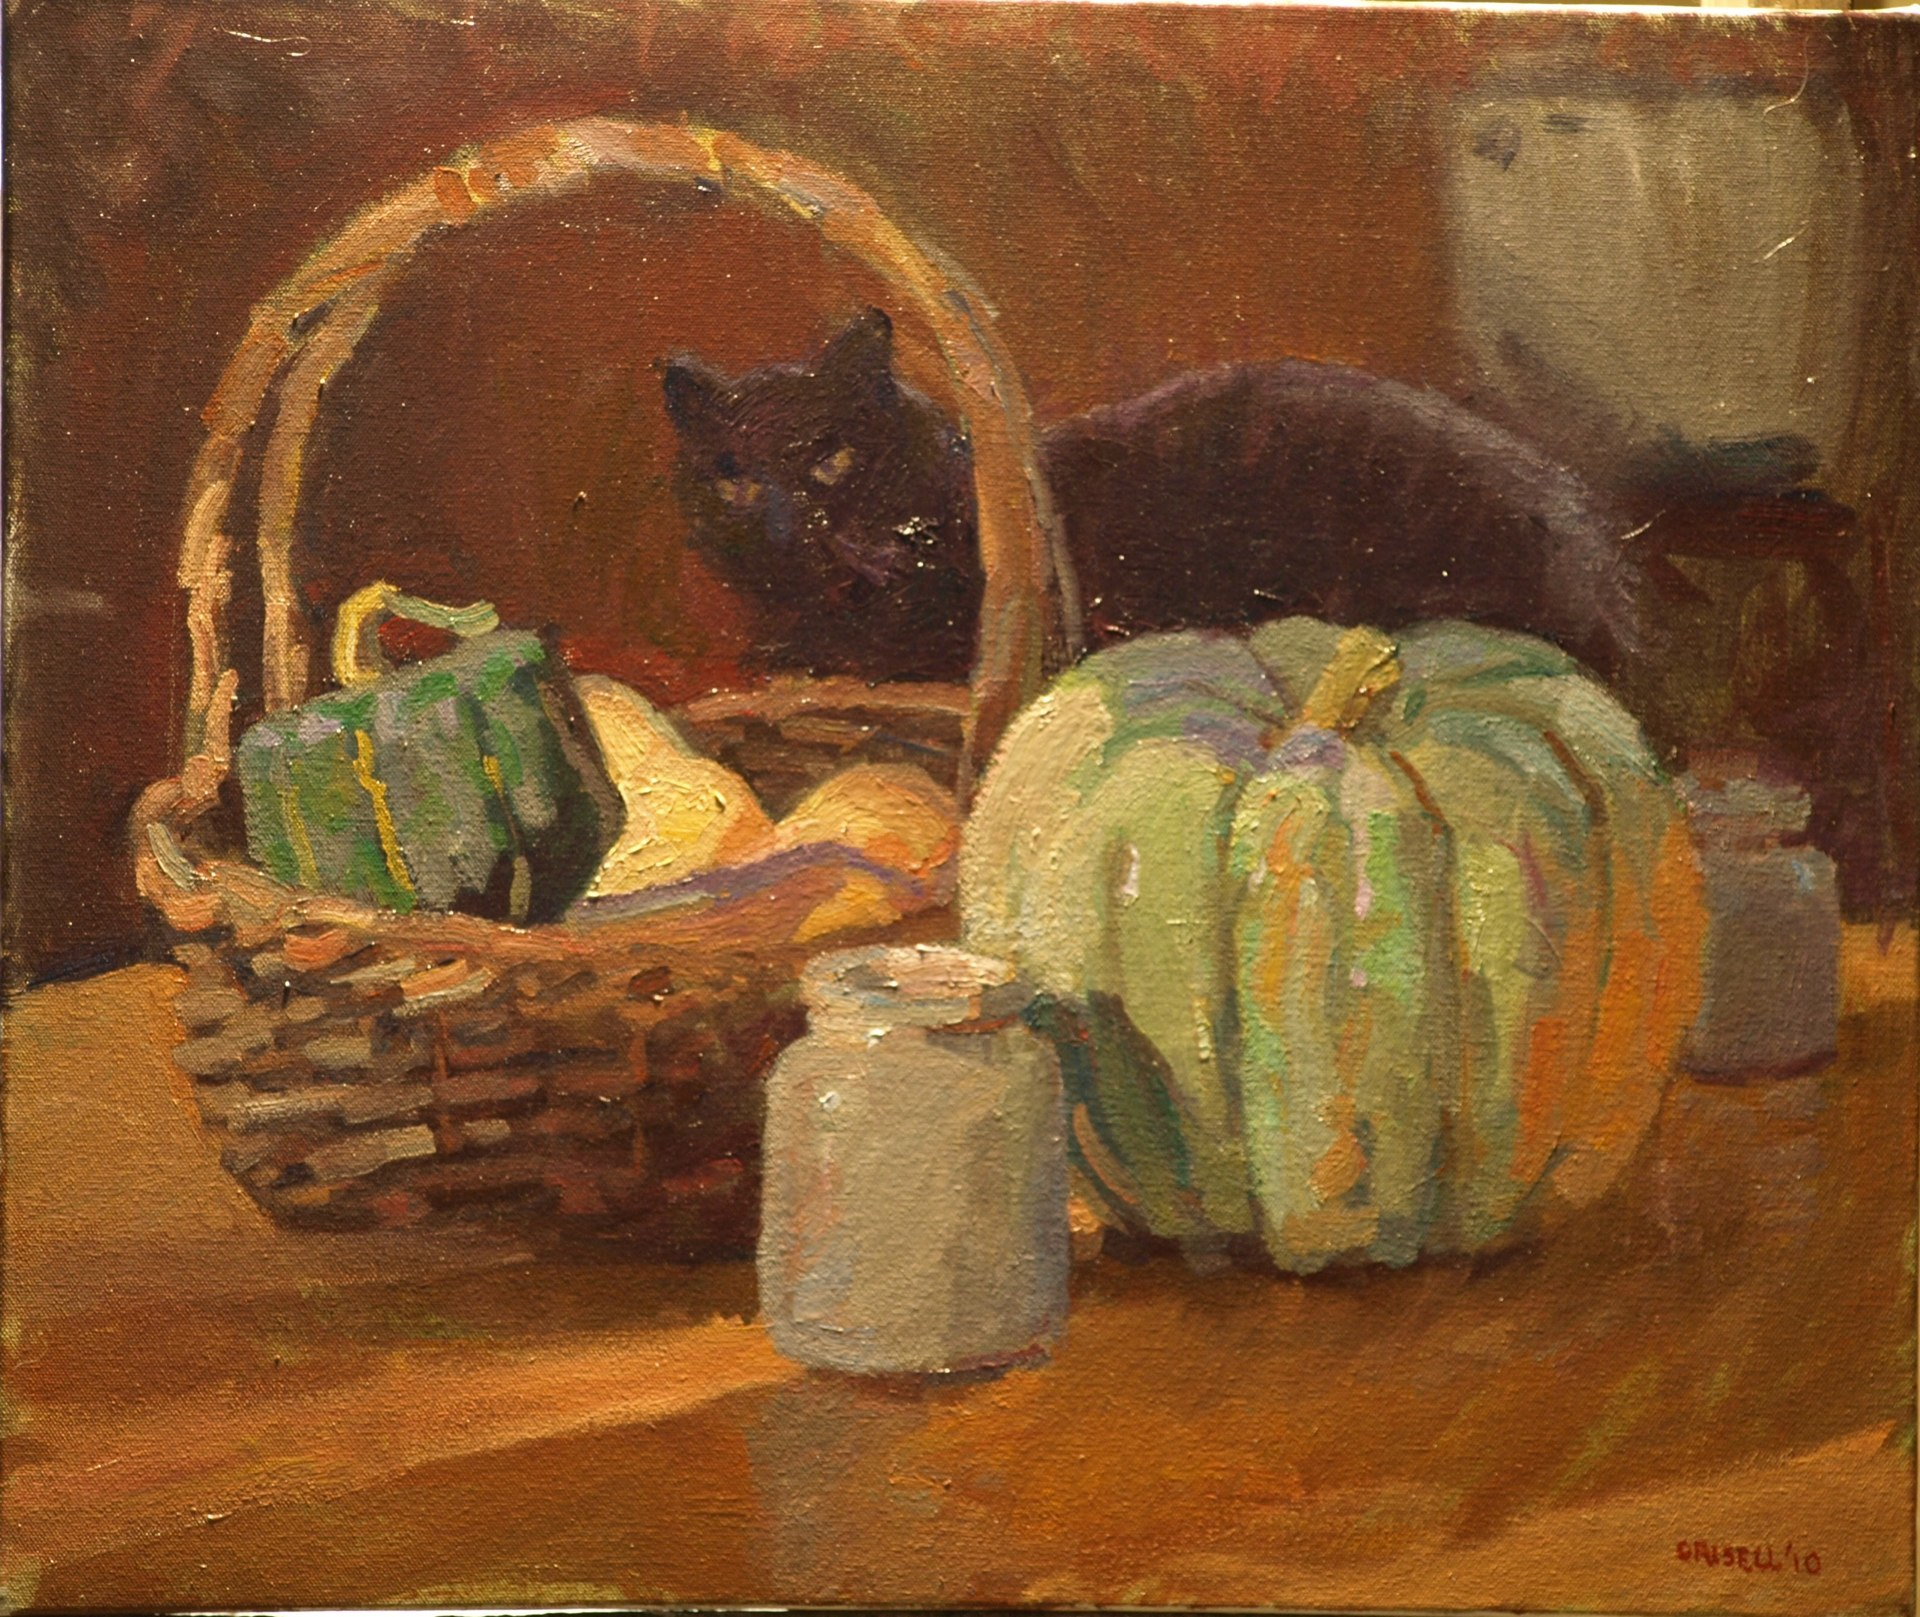 Cat and Winter Squash, Oil on Canvas, 20 x 24 Inches, by Susan Grisell, $650